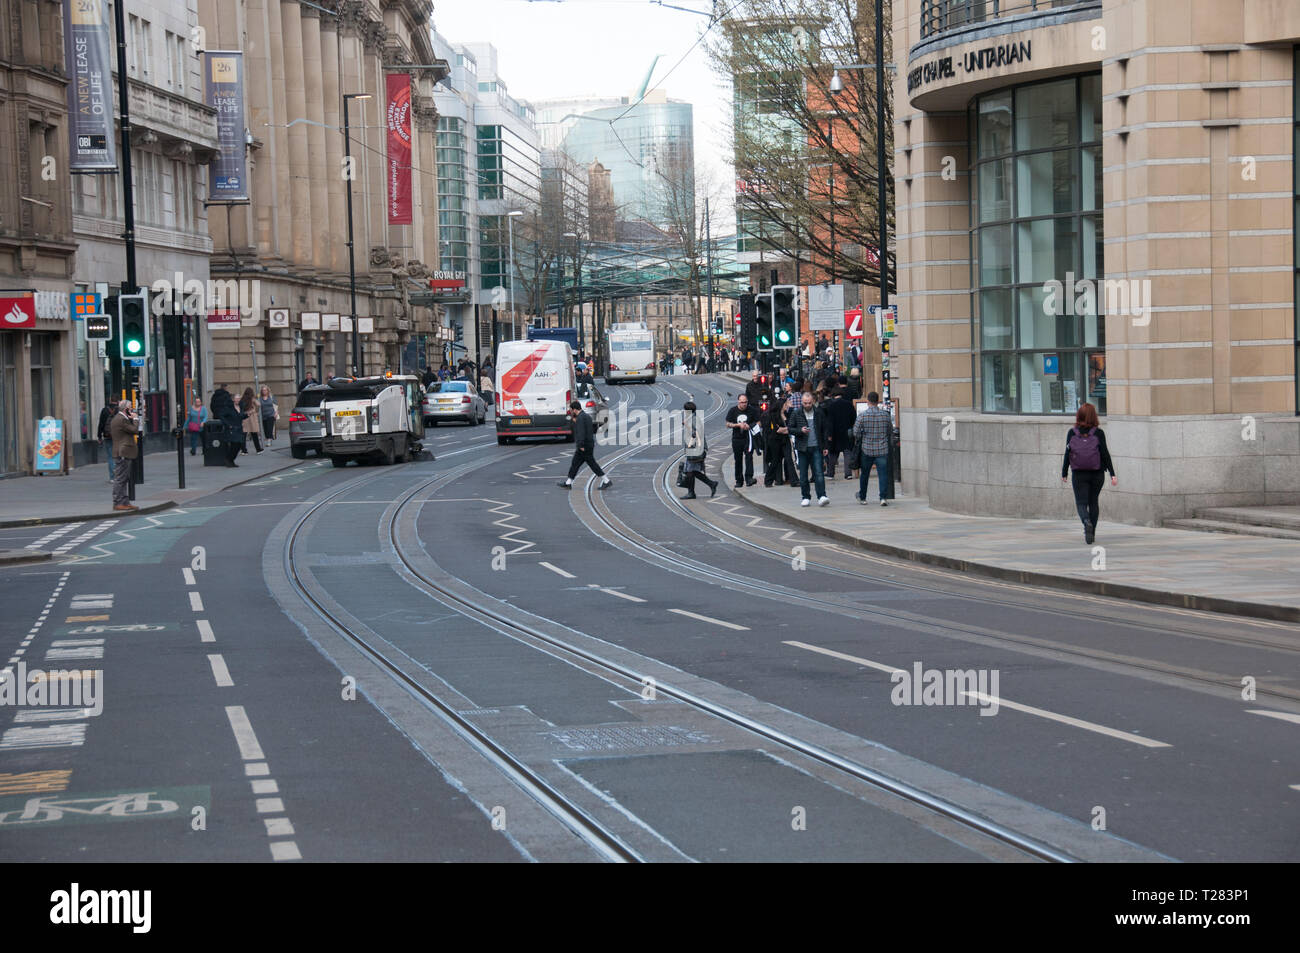 A Spring day on Cross Street in Manchester, UK Stock Photo